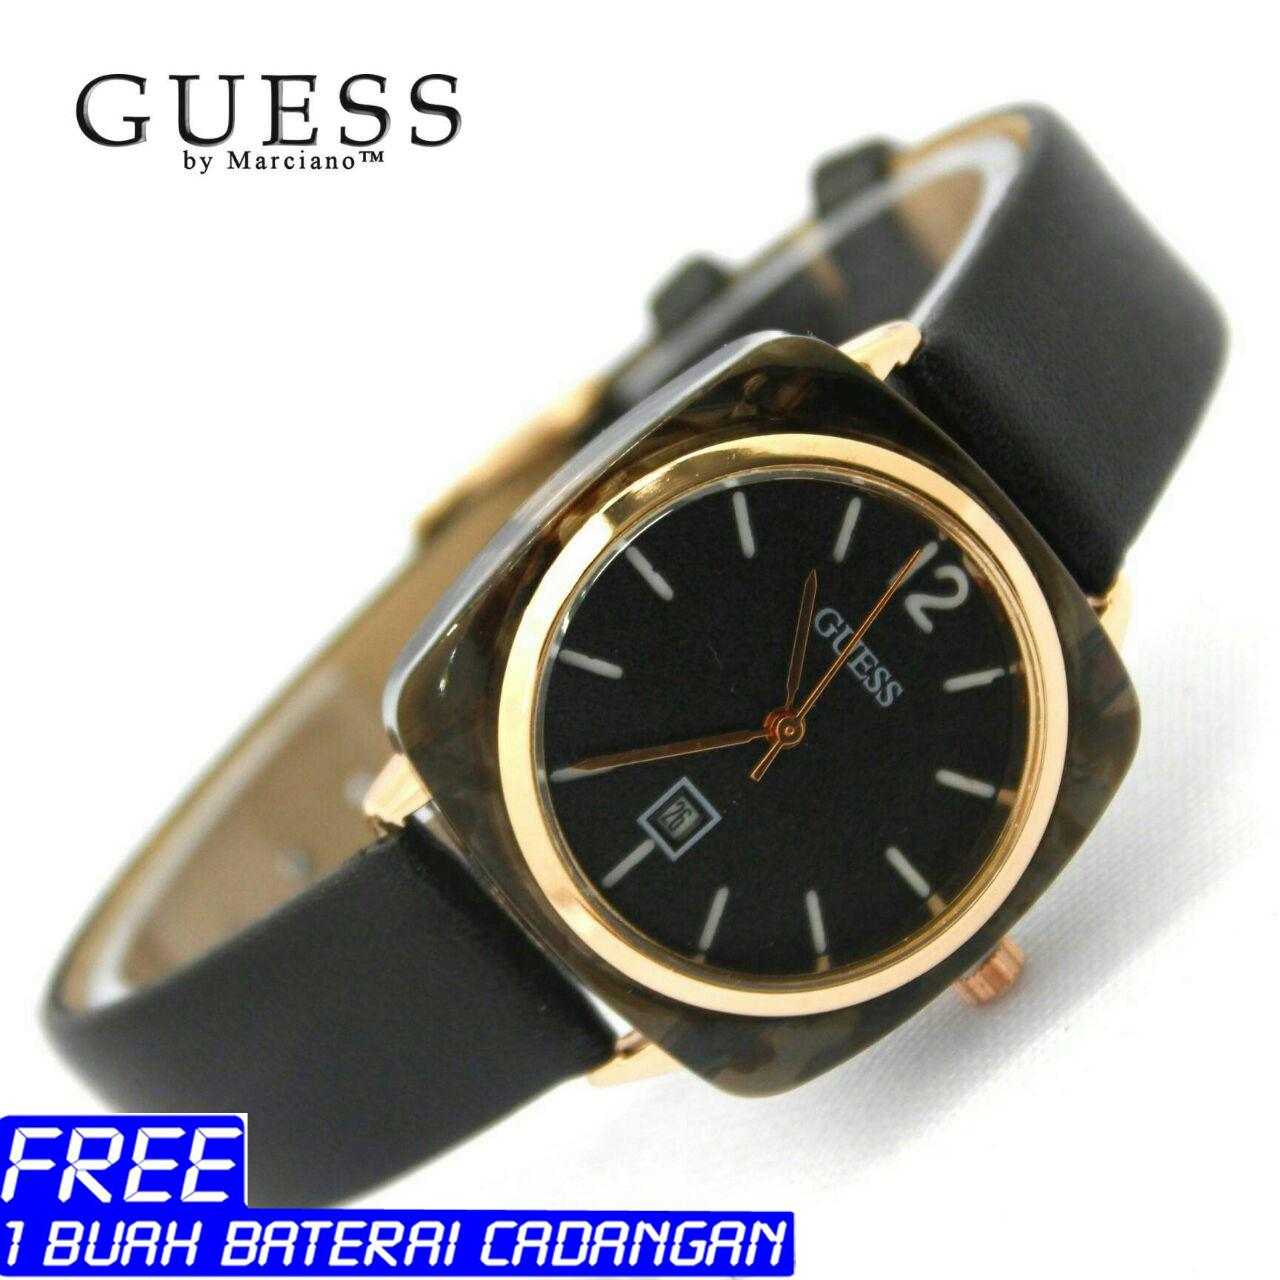 JAM TANGAN WANITA, GUESS, TALI KULIT, LUXURY, MODEL TERBARU, ANALOG TIME